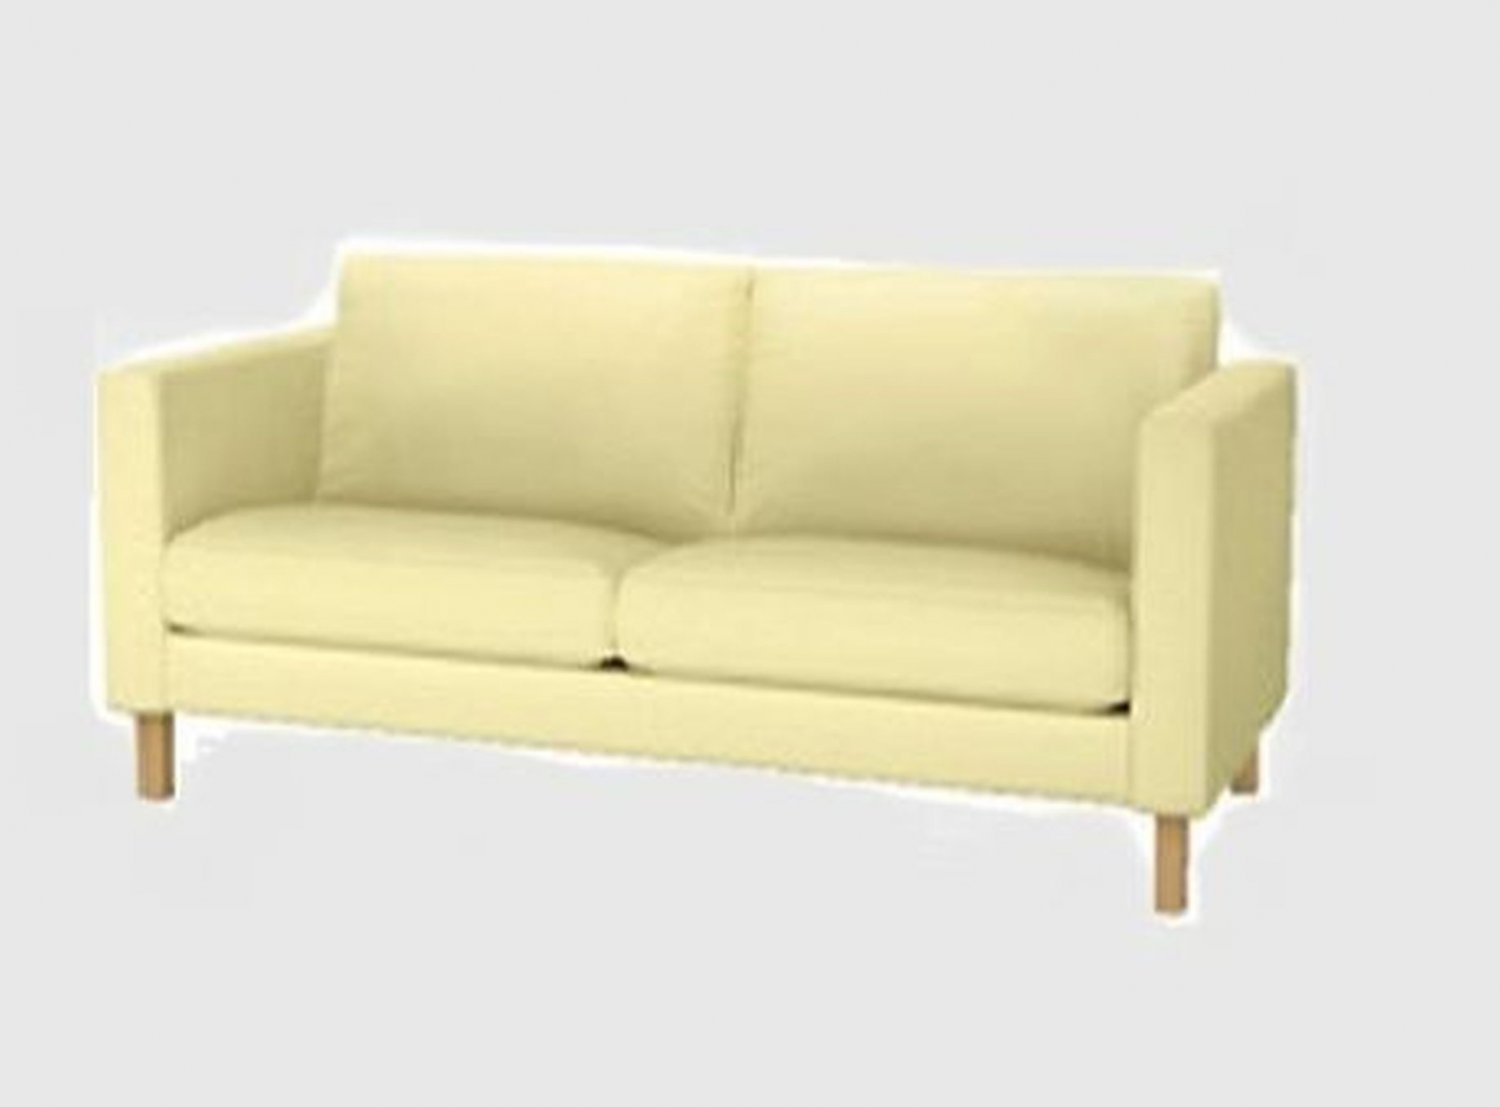 Ikea Loveseat Ikea Karlstad Loveseat Sofa Slipcover Cover Sivik Light Yellow 2 Seat Mid Century Modern